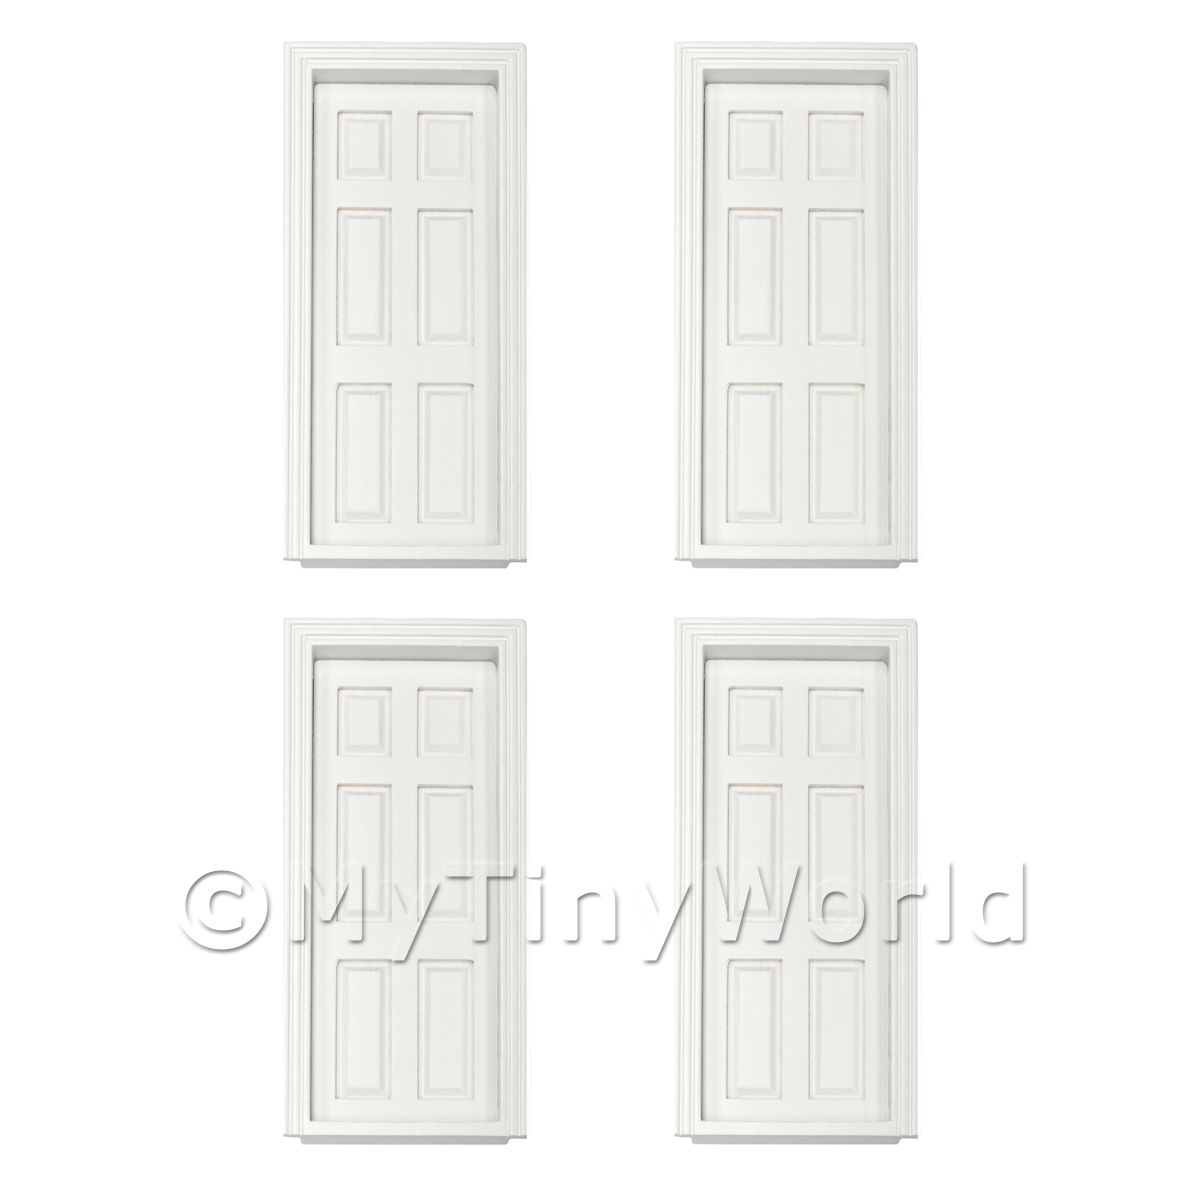 4 x Dolls House Miniature White 6 Panel Wood Doors